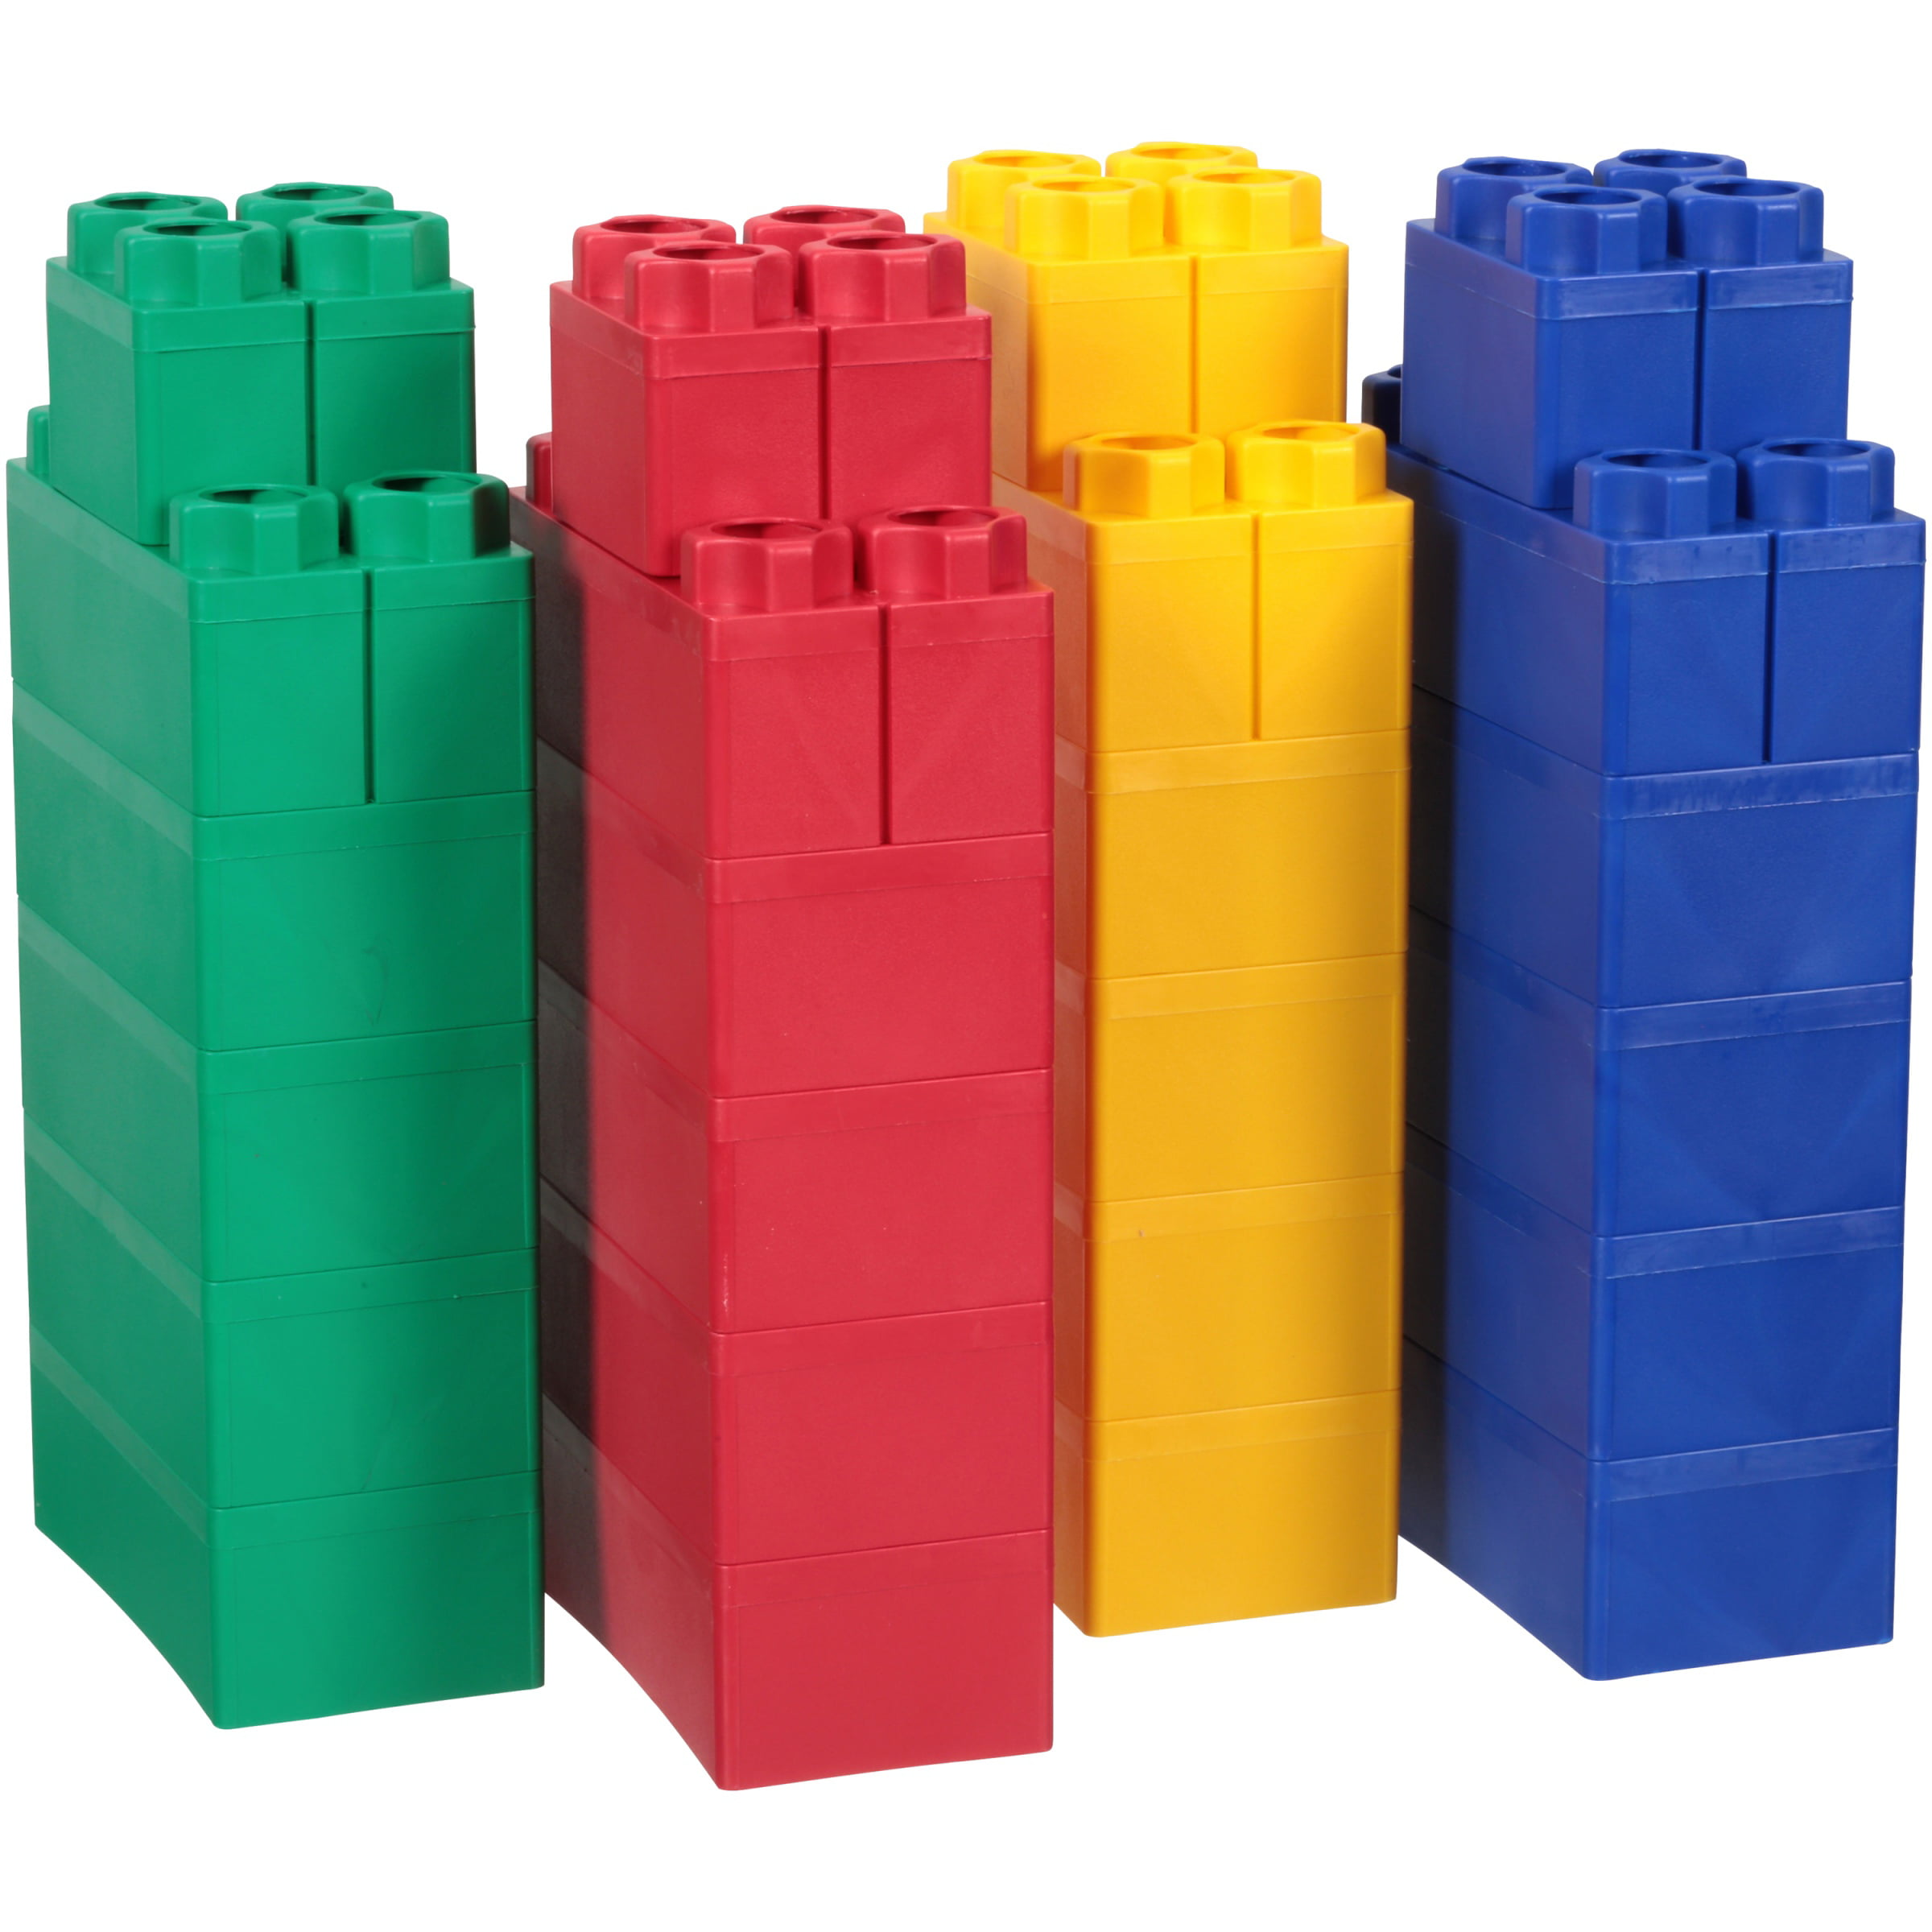 Jumbo Blocks Beginner Set 24 pc Box by Serec Entertainment LLC